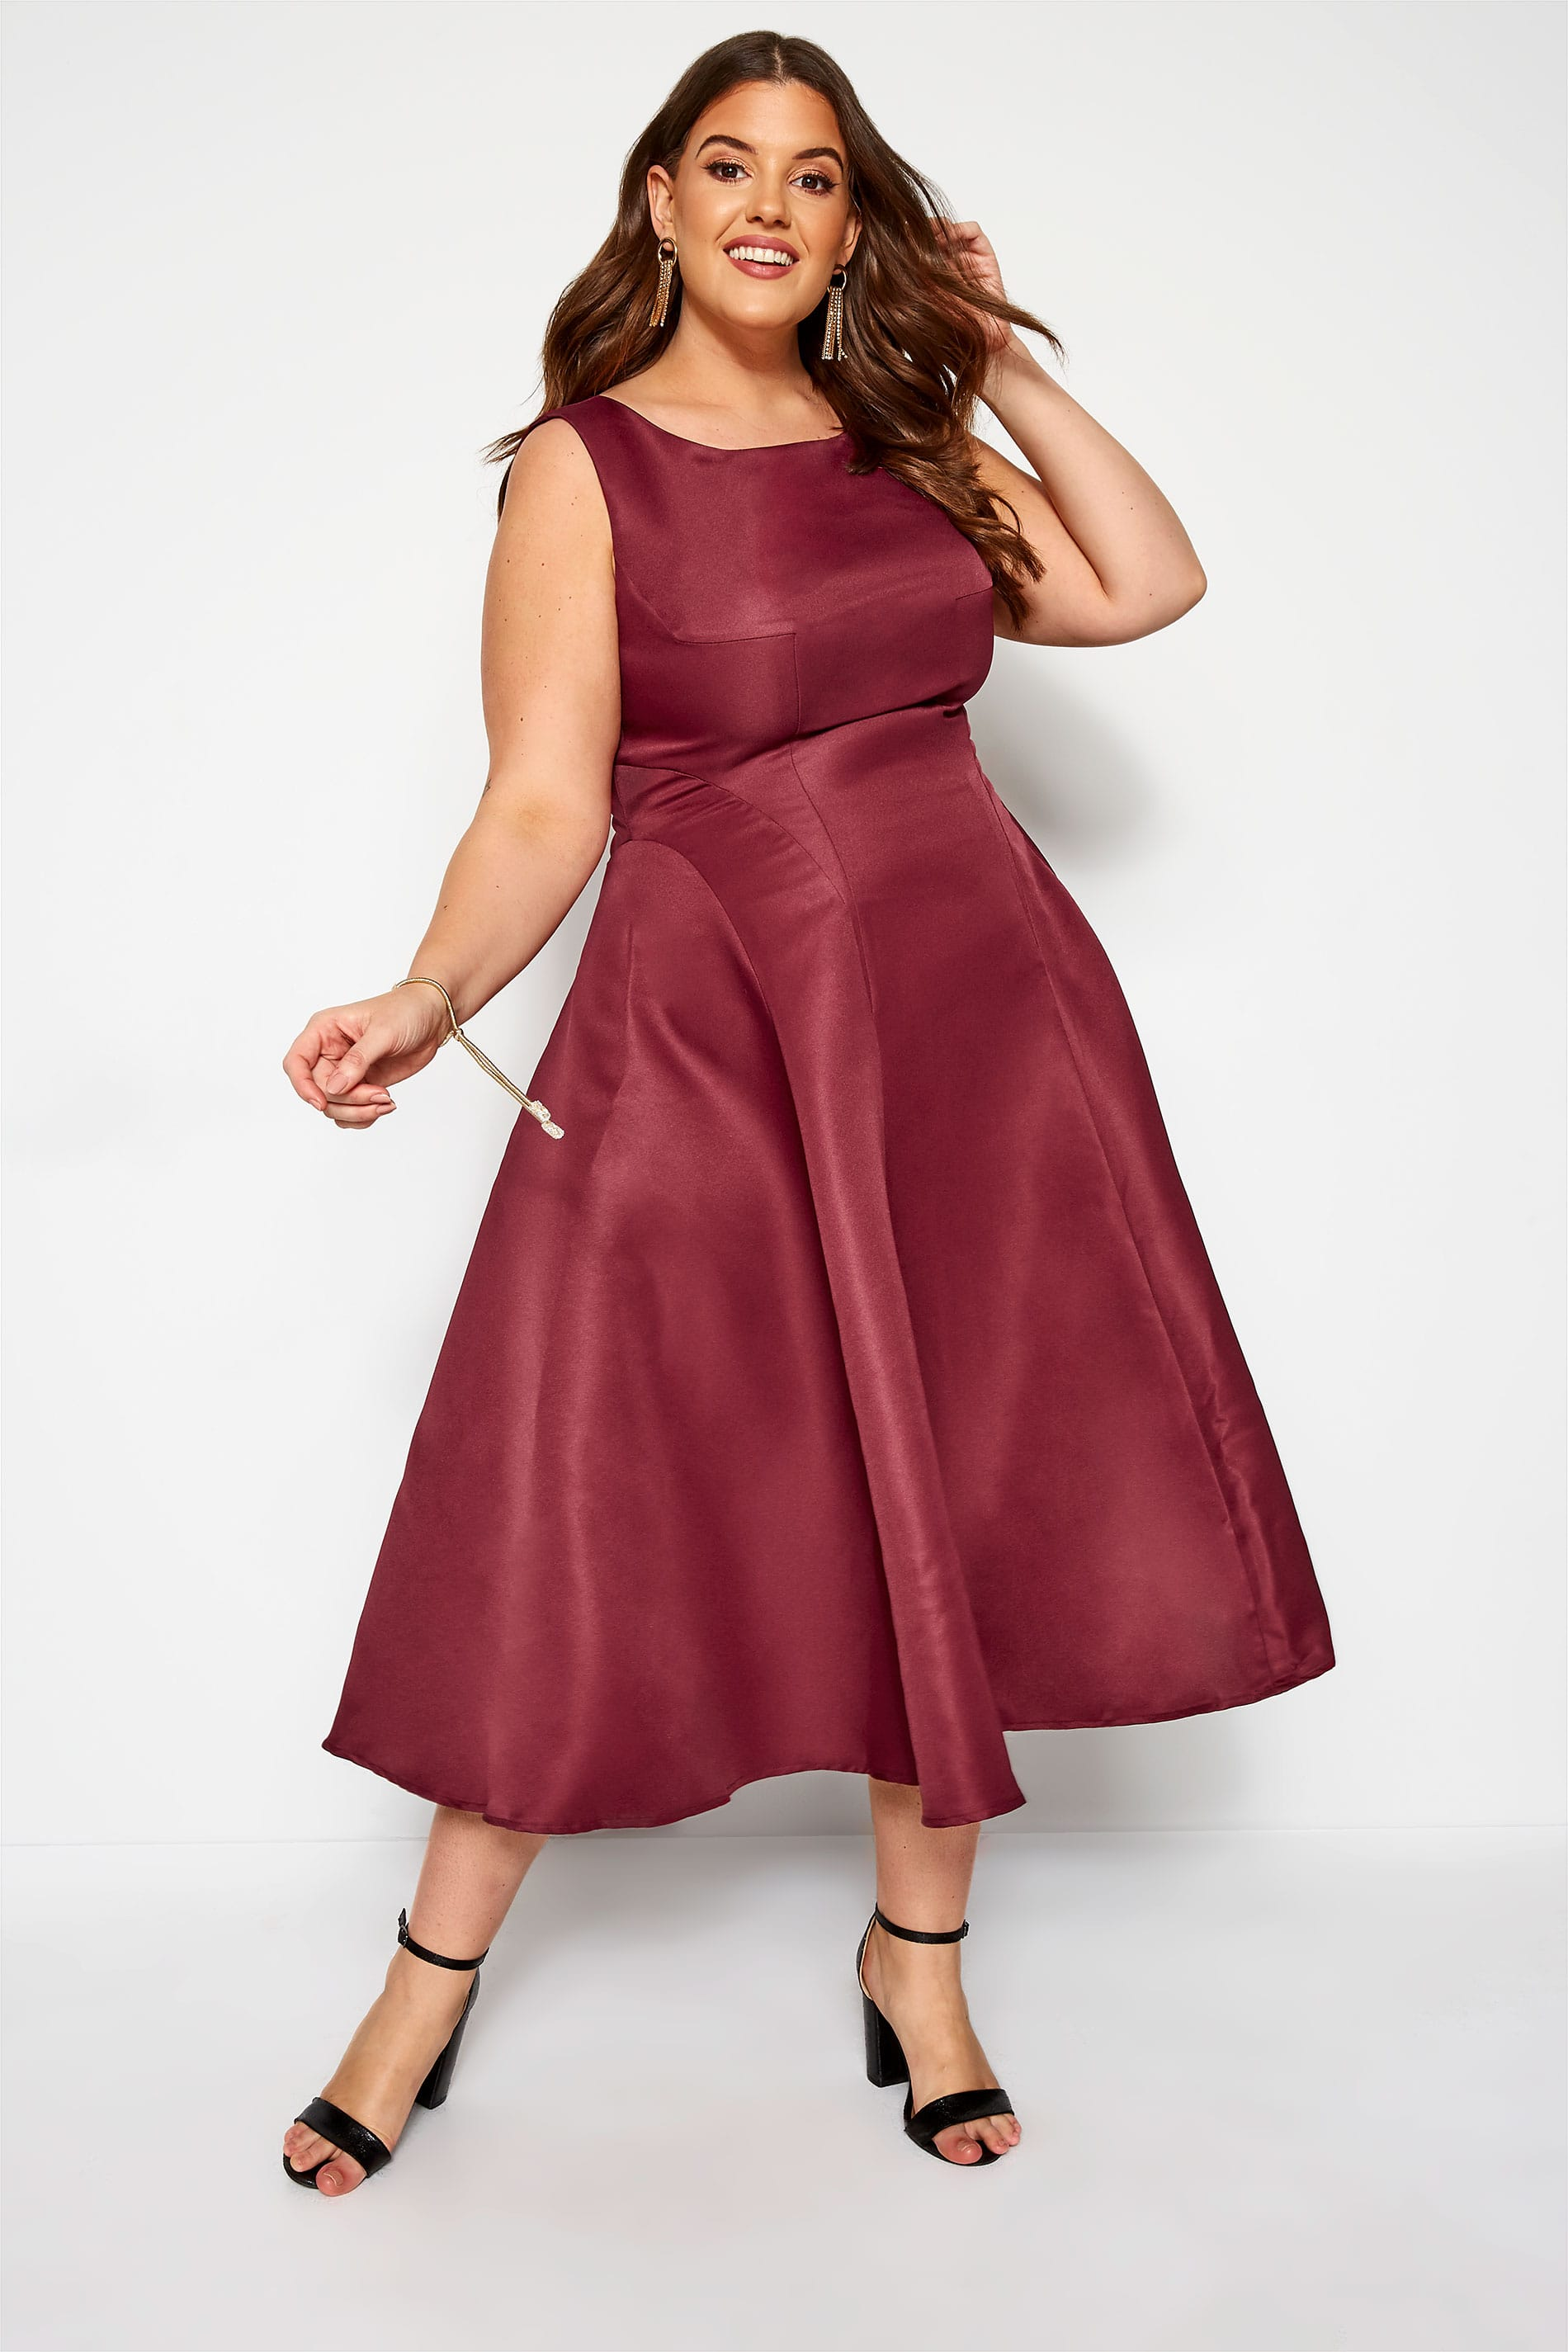 Chi Chi Robe De Cocktail Bordeaux Patineuse Grande Taille 44 64 Yours Clothing